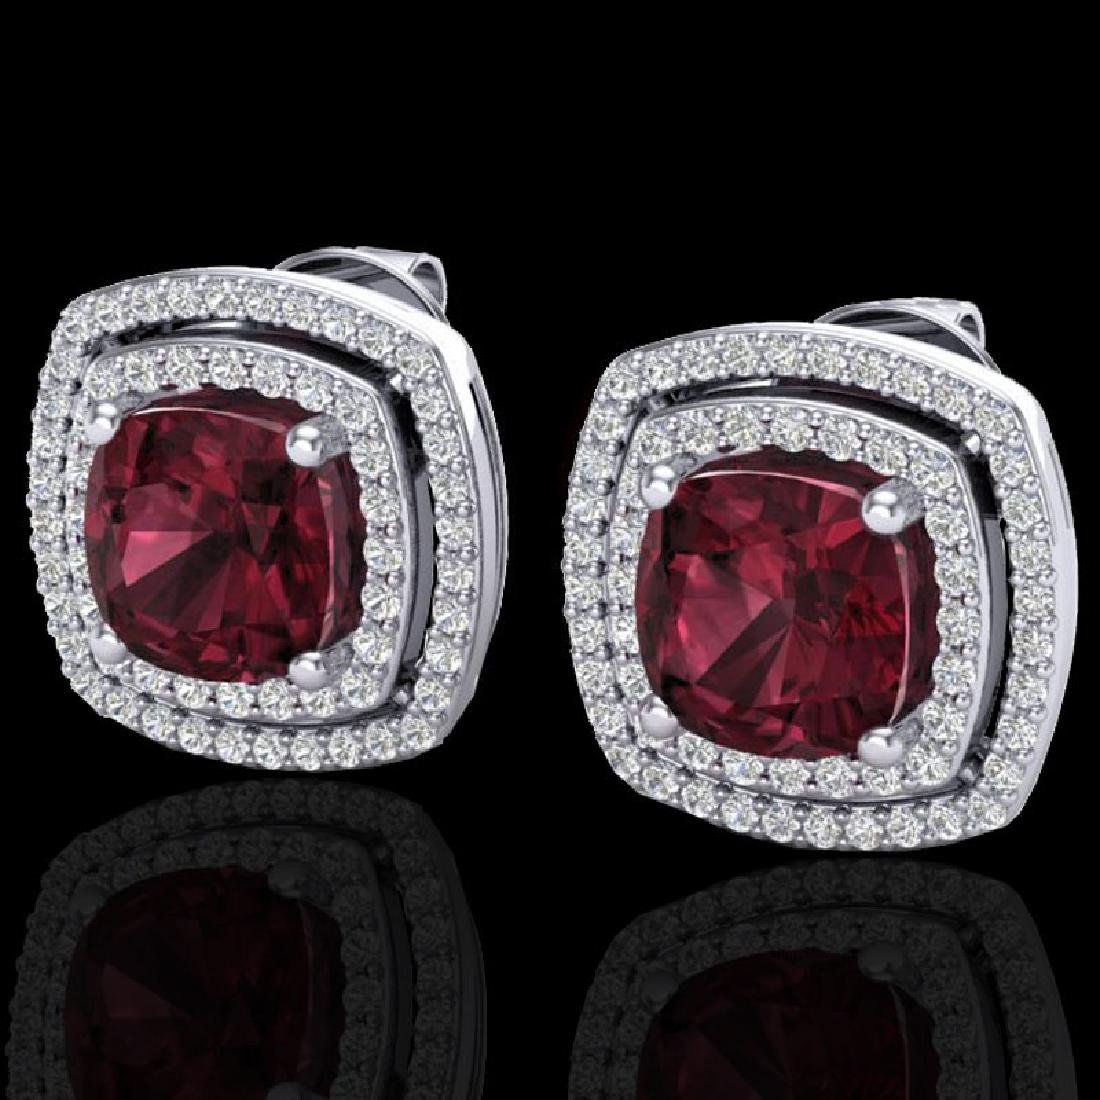 4.55 CTW Garnet & Micro Pave VS/SI Diamond Halo